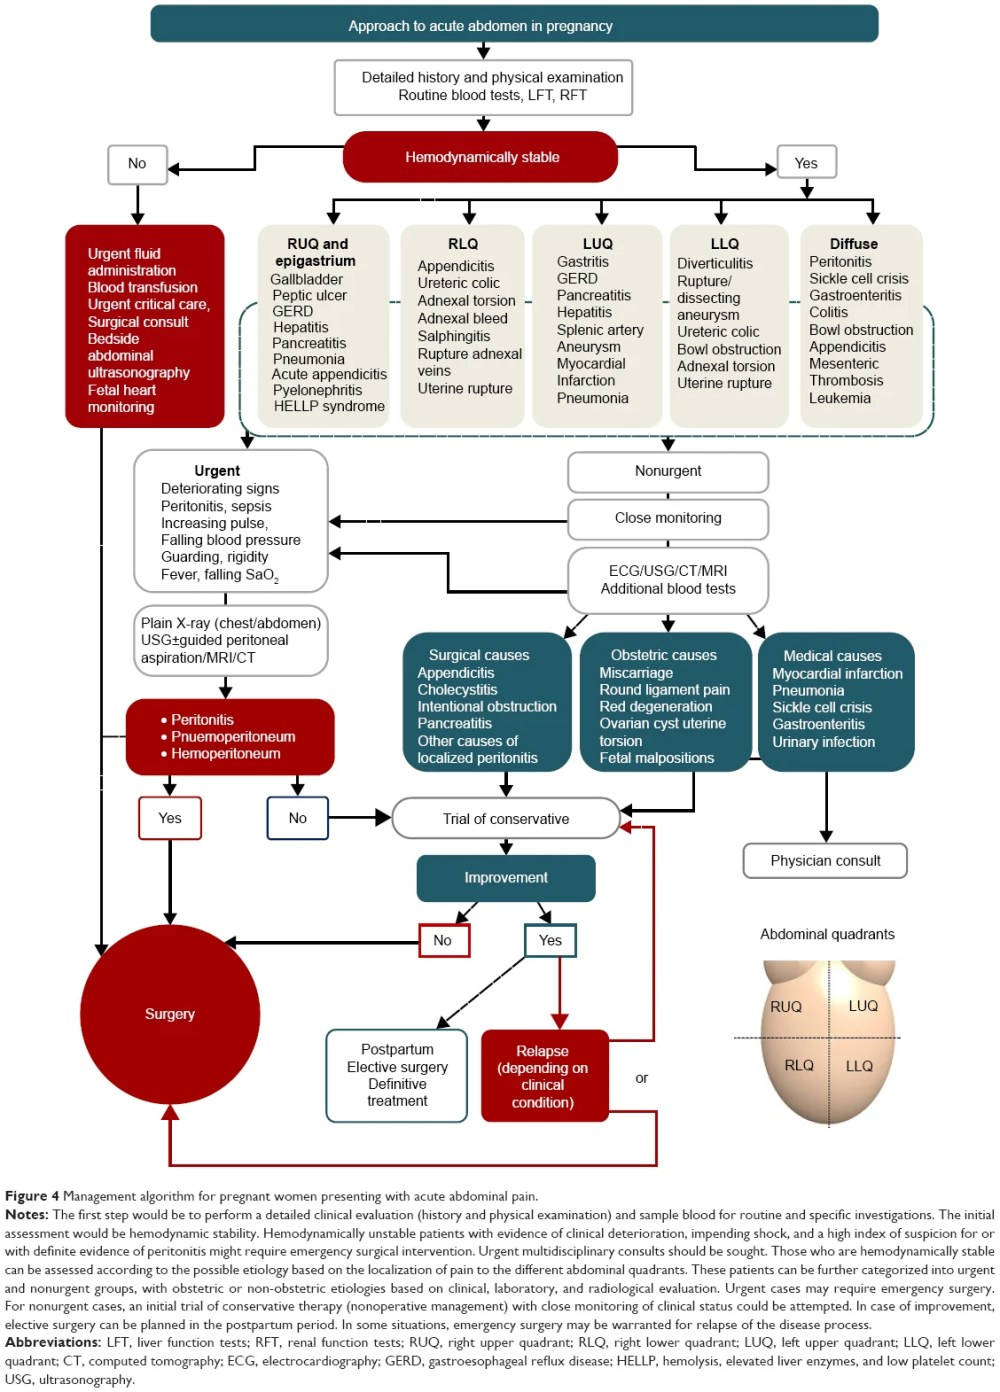 medium resolution of figure 4 management algorithm for pregnant women presenting with acute abdominal pain notes the first step would be to perform a detailed clinical